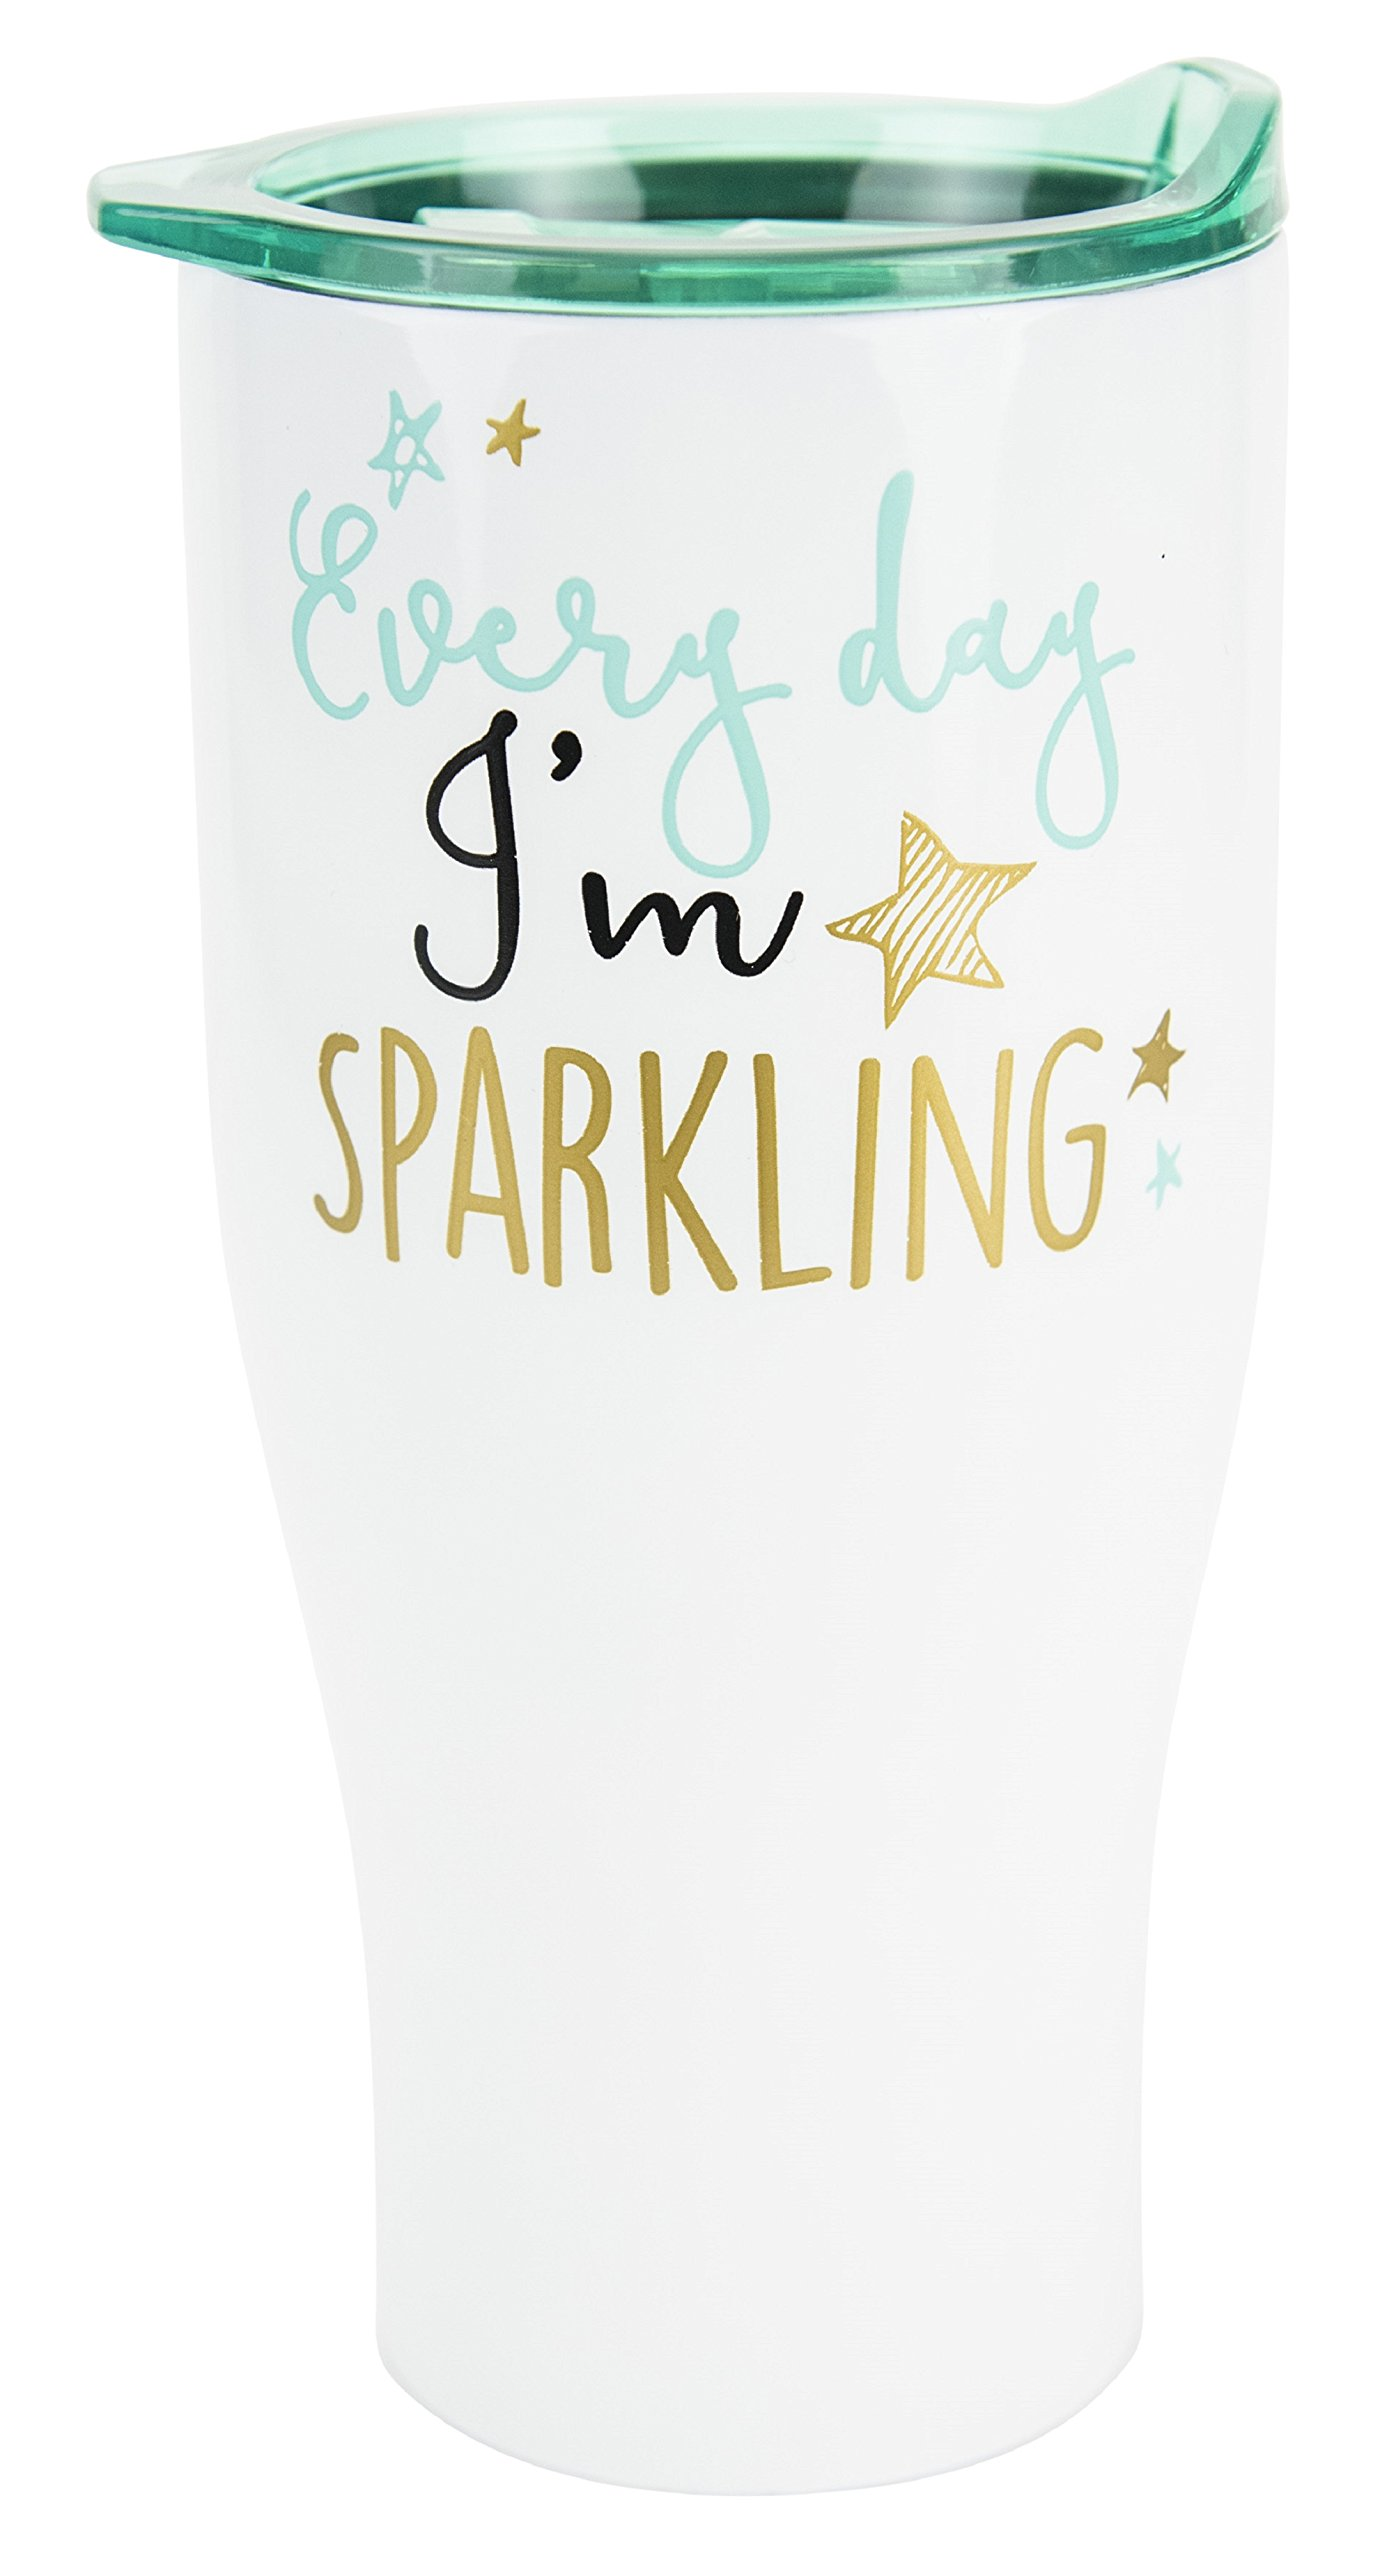 Boston Warehouse 30-Ounce Stainless Steel Insulated Double Wall Travel Tumbler with Lid, Glossy White- Every Day I'm Sparkling by Boston Warehouse